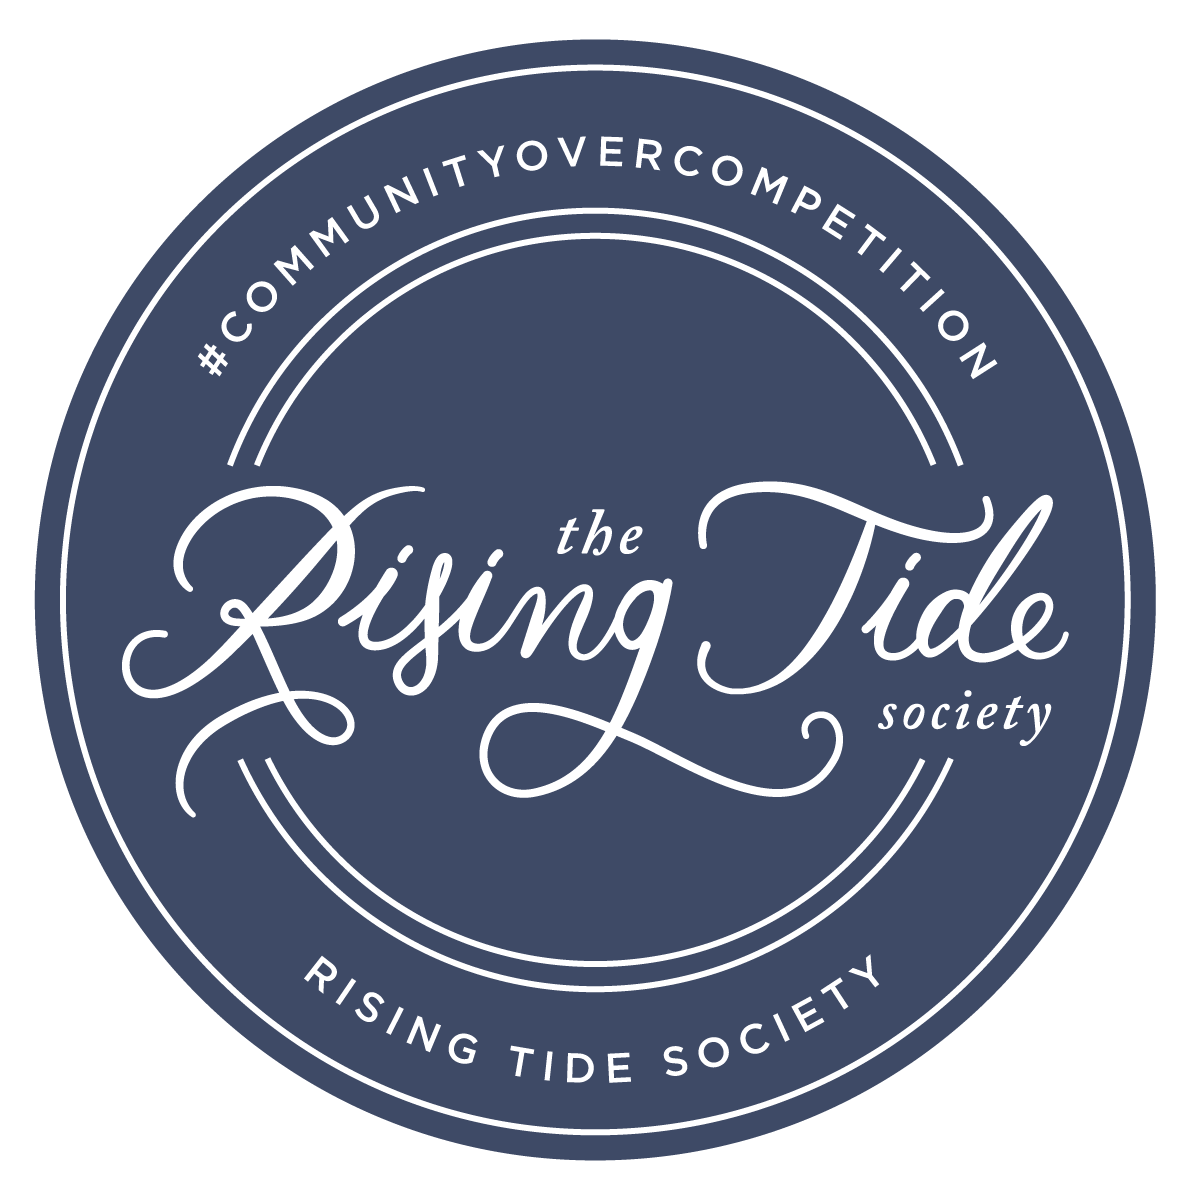 The-Rising-tide-society